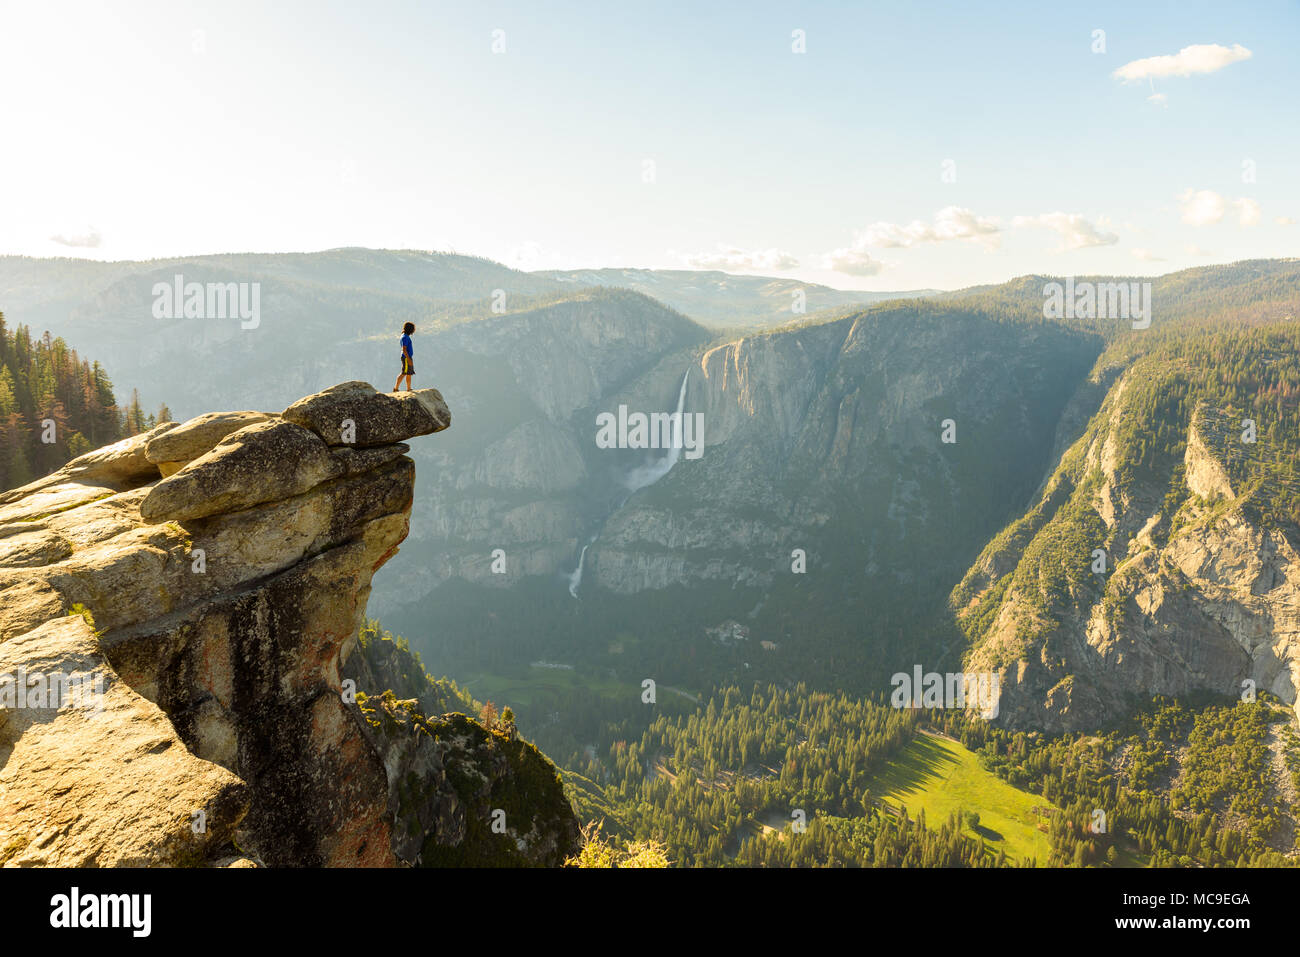 Hiker at the Glacier Point with View to Yosemite Falls and Valley in the  Yosemite National Park, California, USA